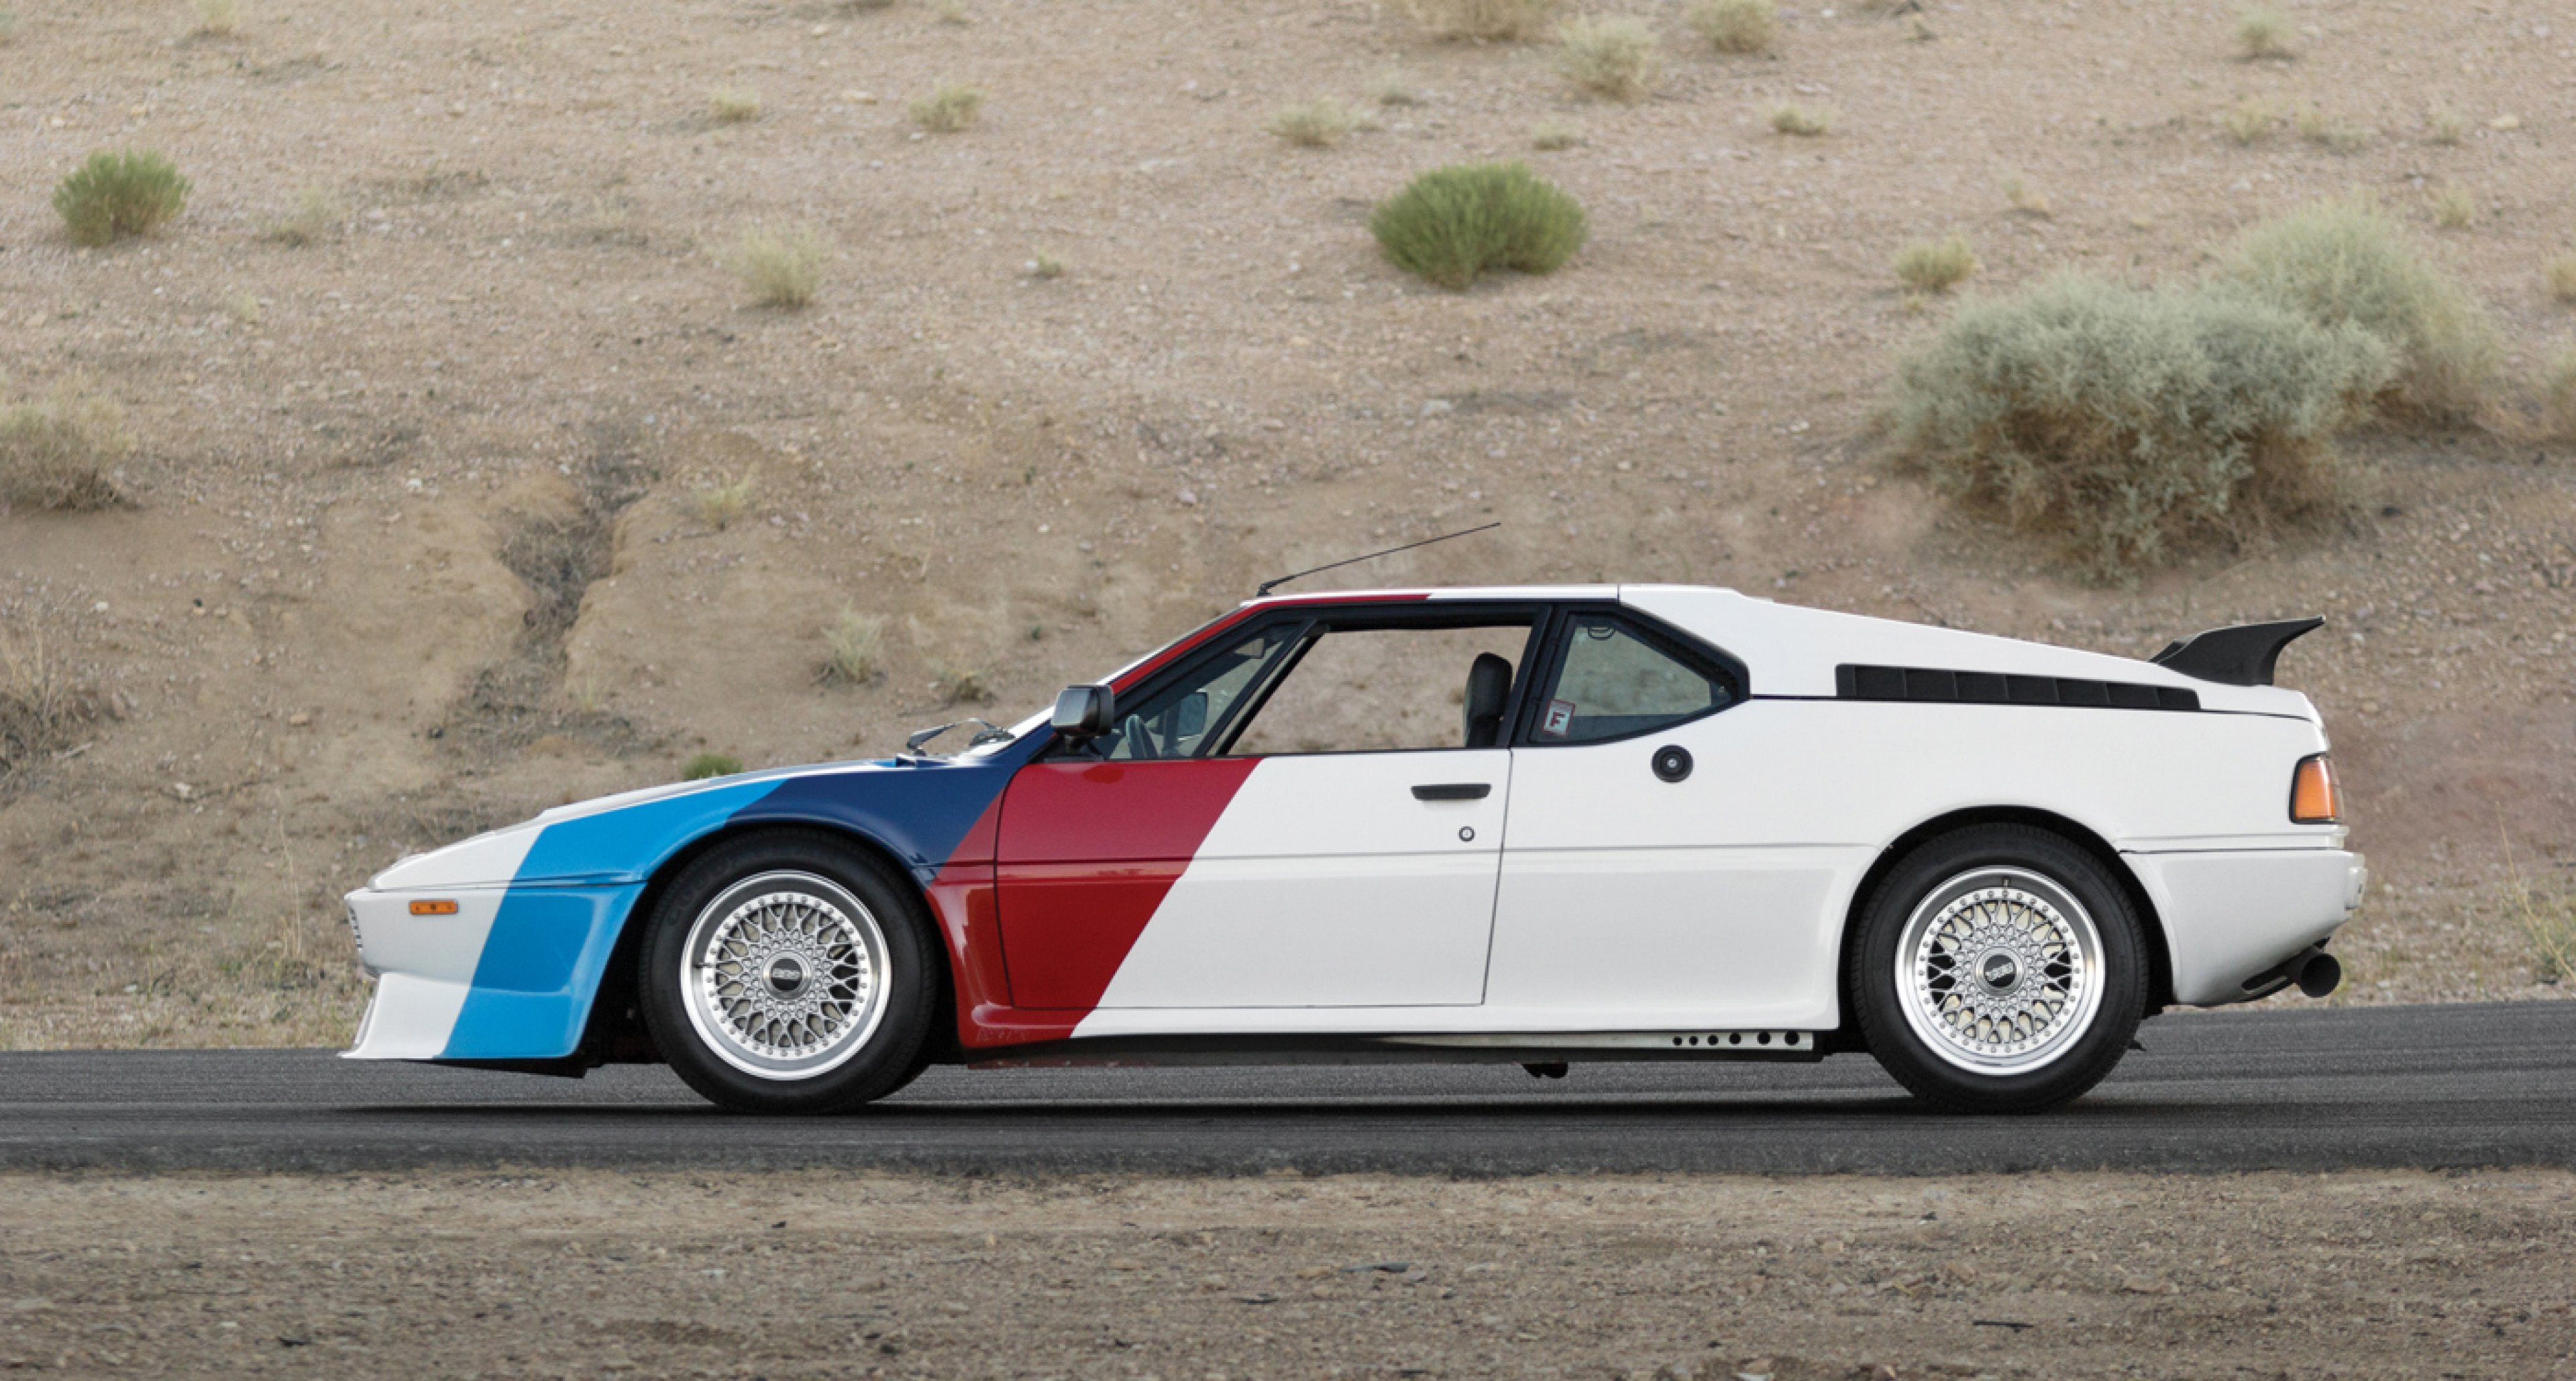 1980 BMW M1 AHG Studie To Be Auctioned At RM039s Monterey